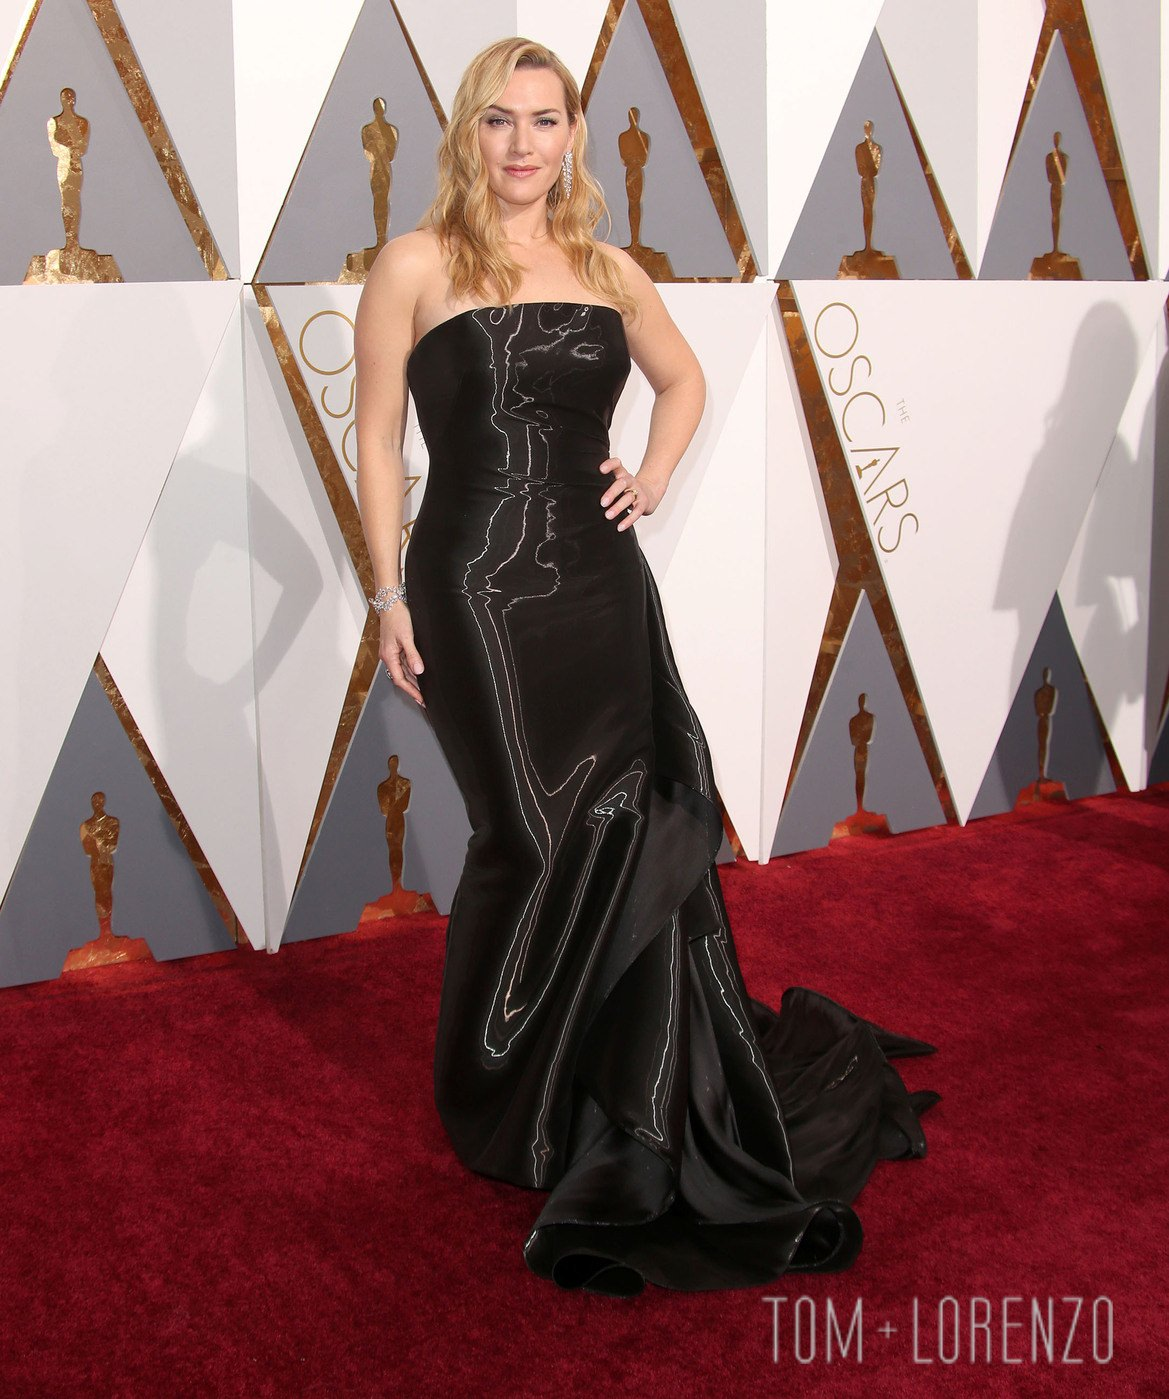 Kate-Winslet-Oscars-2016-Red-Carpet-Fashion-Ralph-Lauren-Collection-Tom-Lorenzo-Site (1)